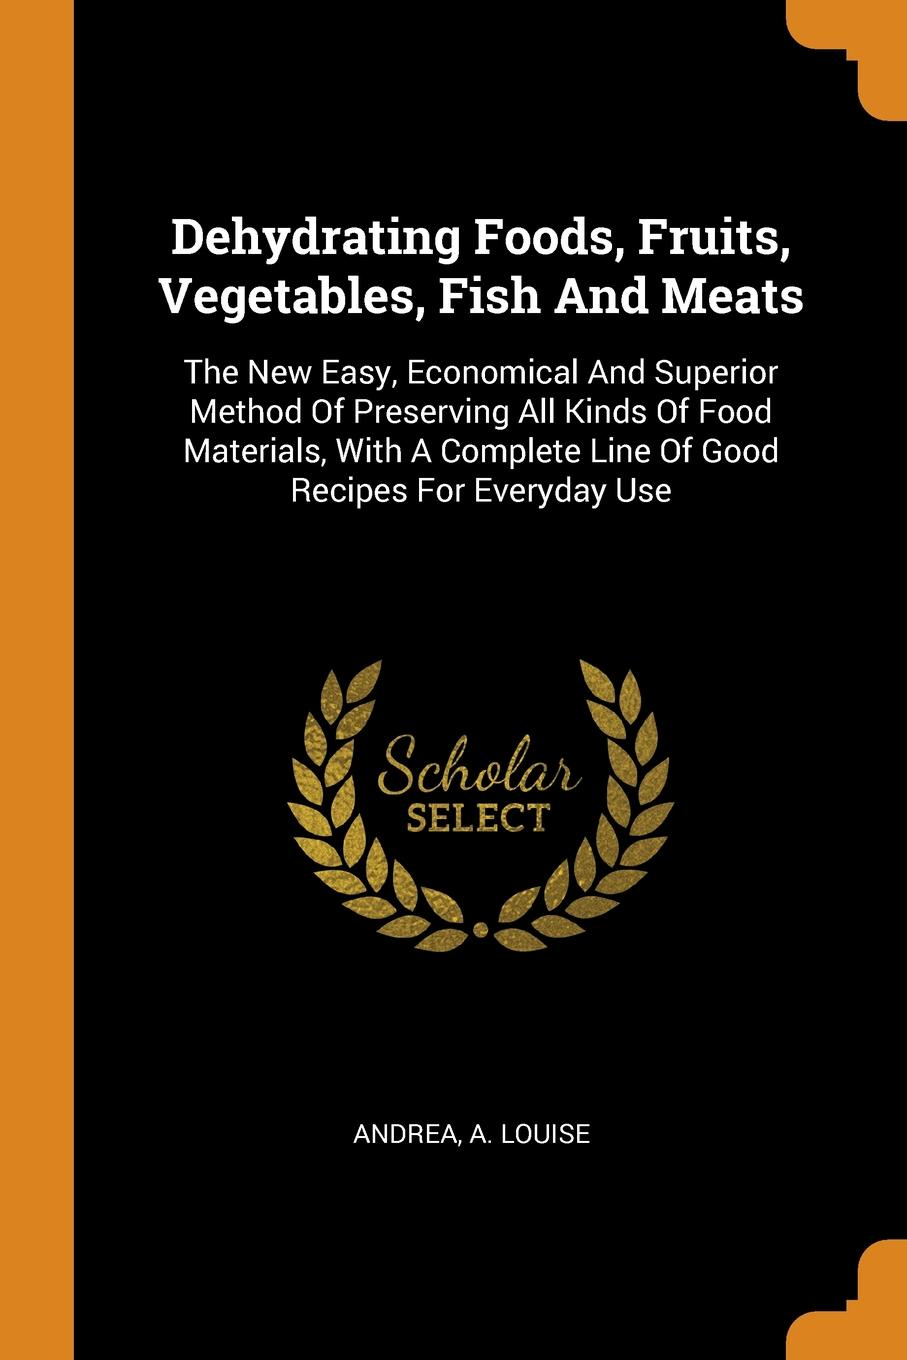 Фото - Andrea A. Louise Dehydrating Foods, Fruits, Vegetables, Fish And Meats. The New Easy, Economical And Superior Method Of Preserving All Kinds Of Food Materials, With A Complete Line Of Good Recipes For Everyday Use hae soo kwak nano and microencapsulation for foods